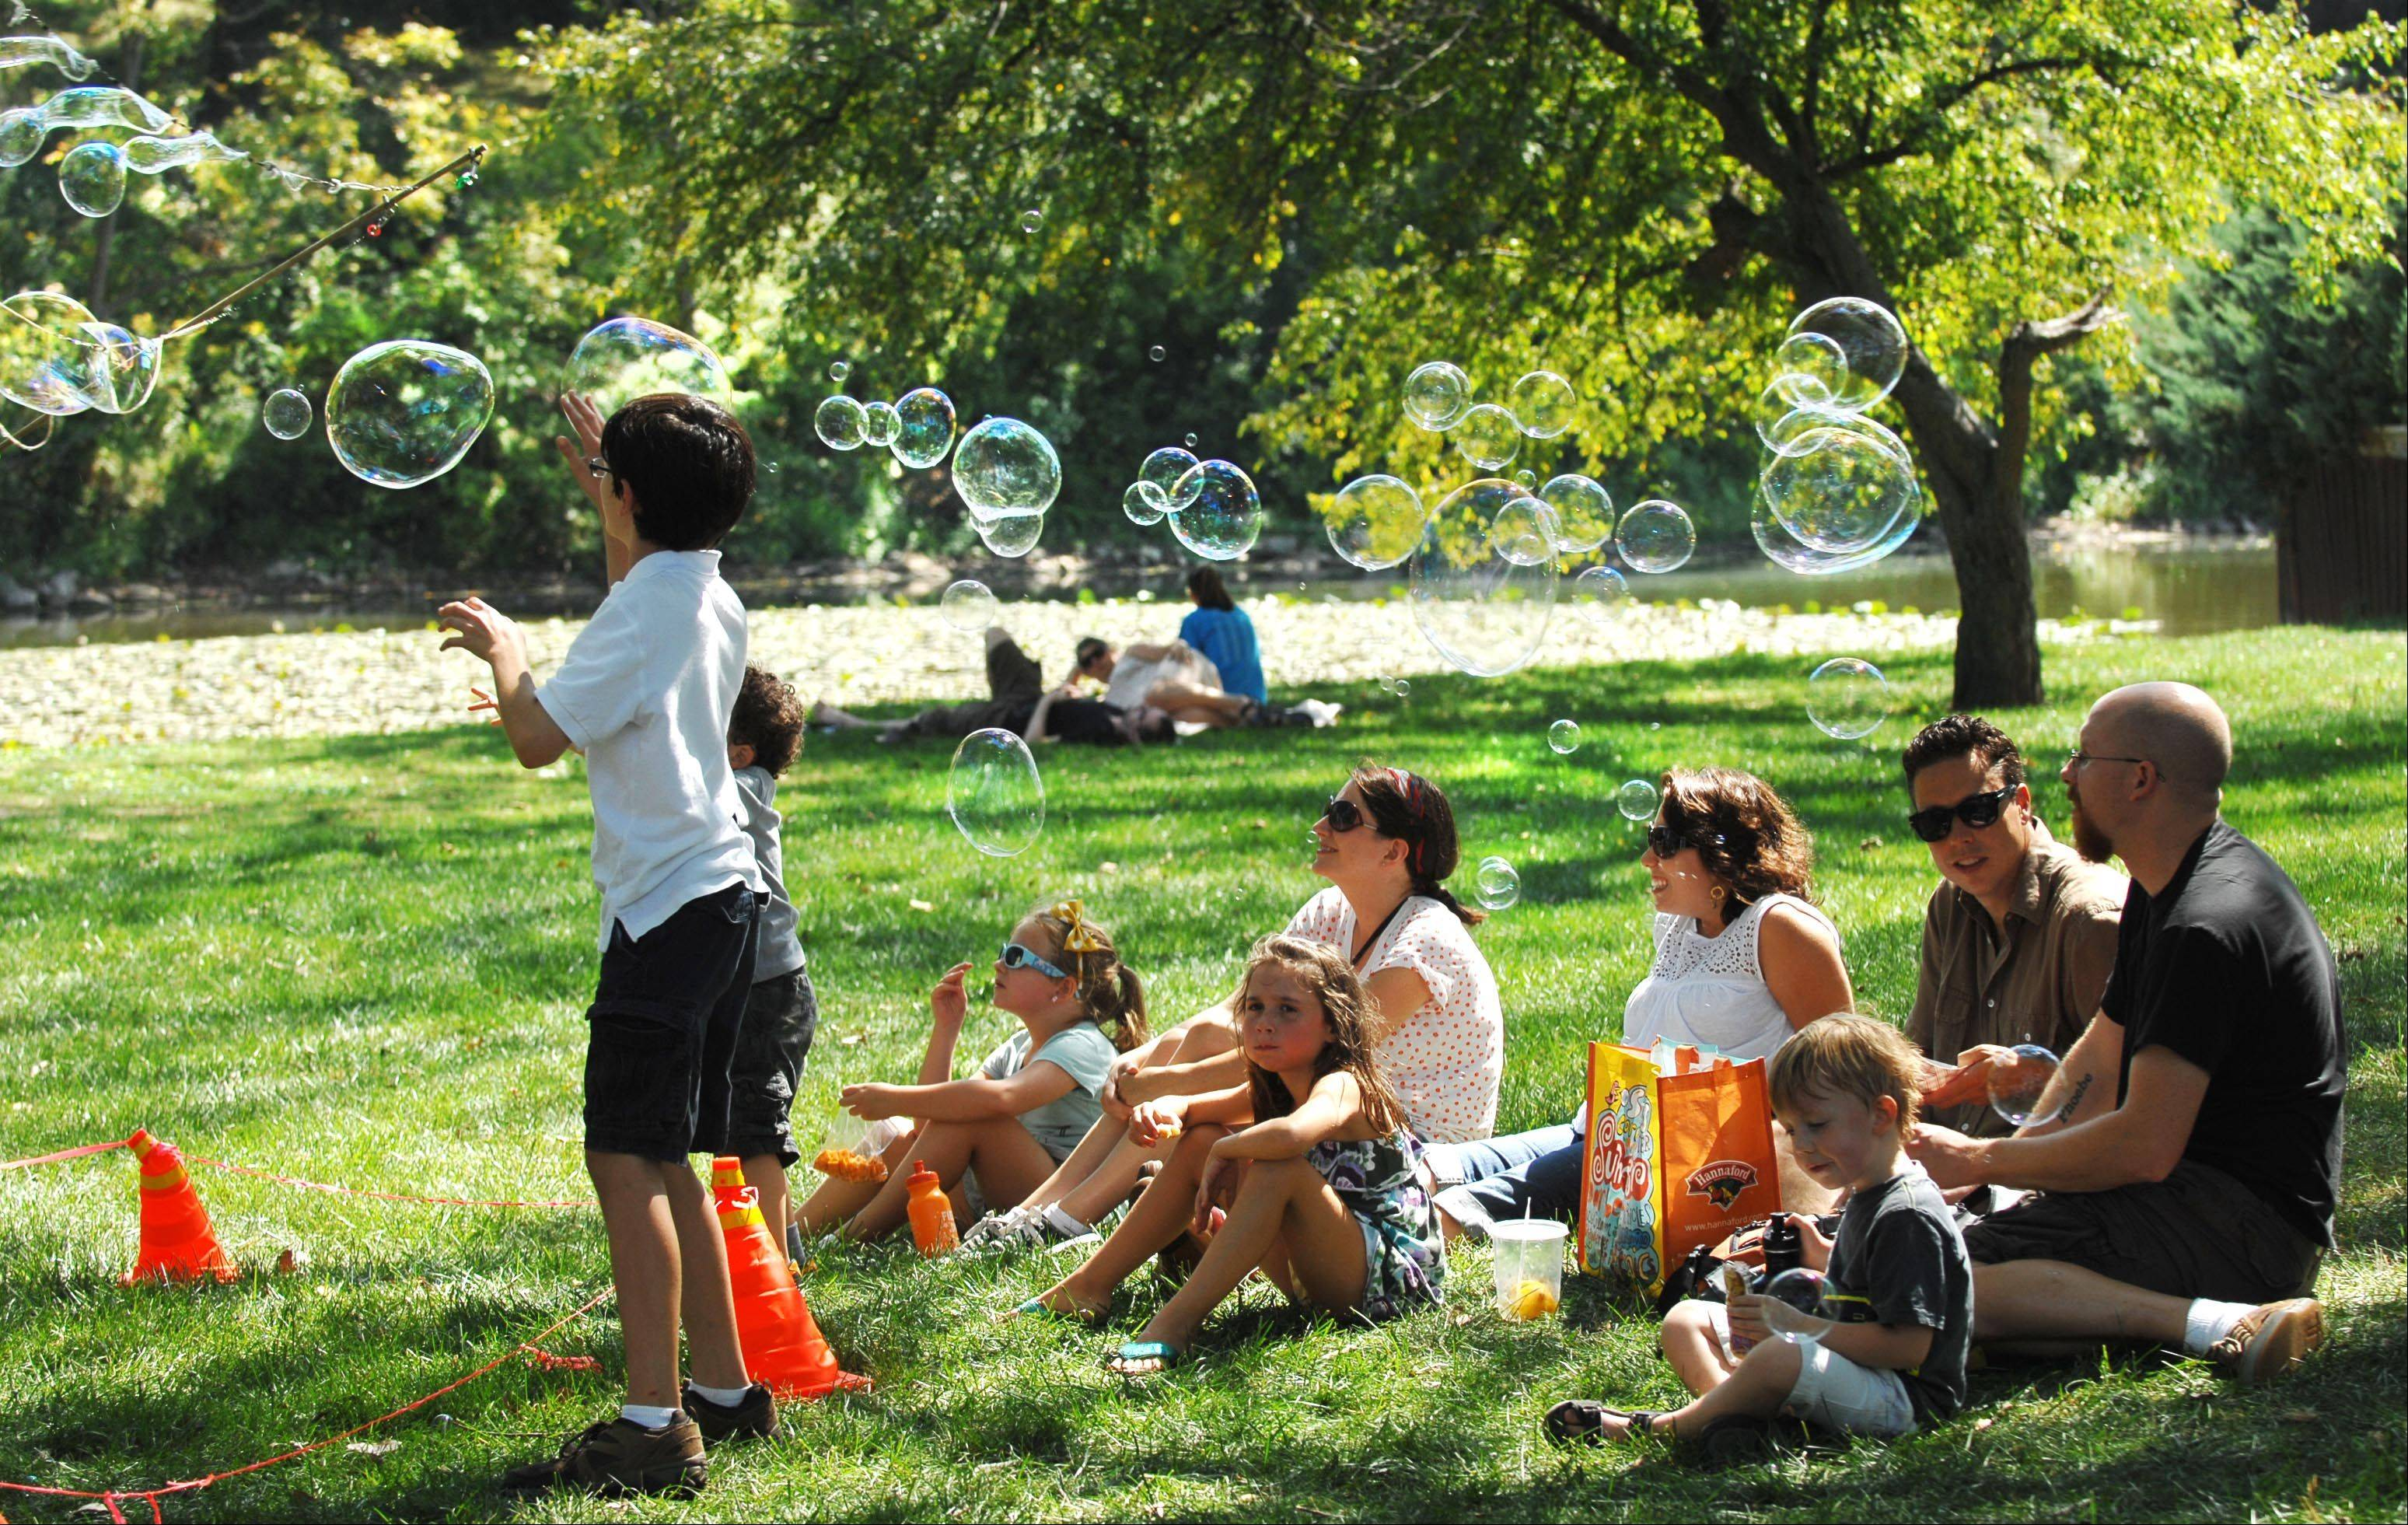 Families enjoy bubbles at the 36th Annual Fox Valley Folk Music & Storytelling Festival in Island Park in Geneva on Monday.